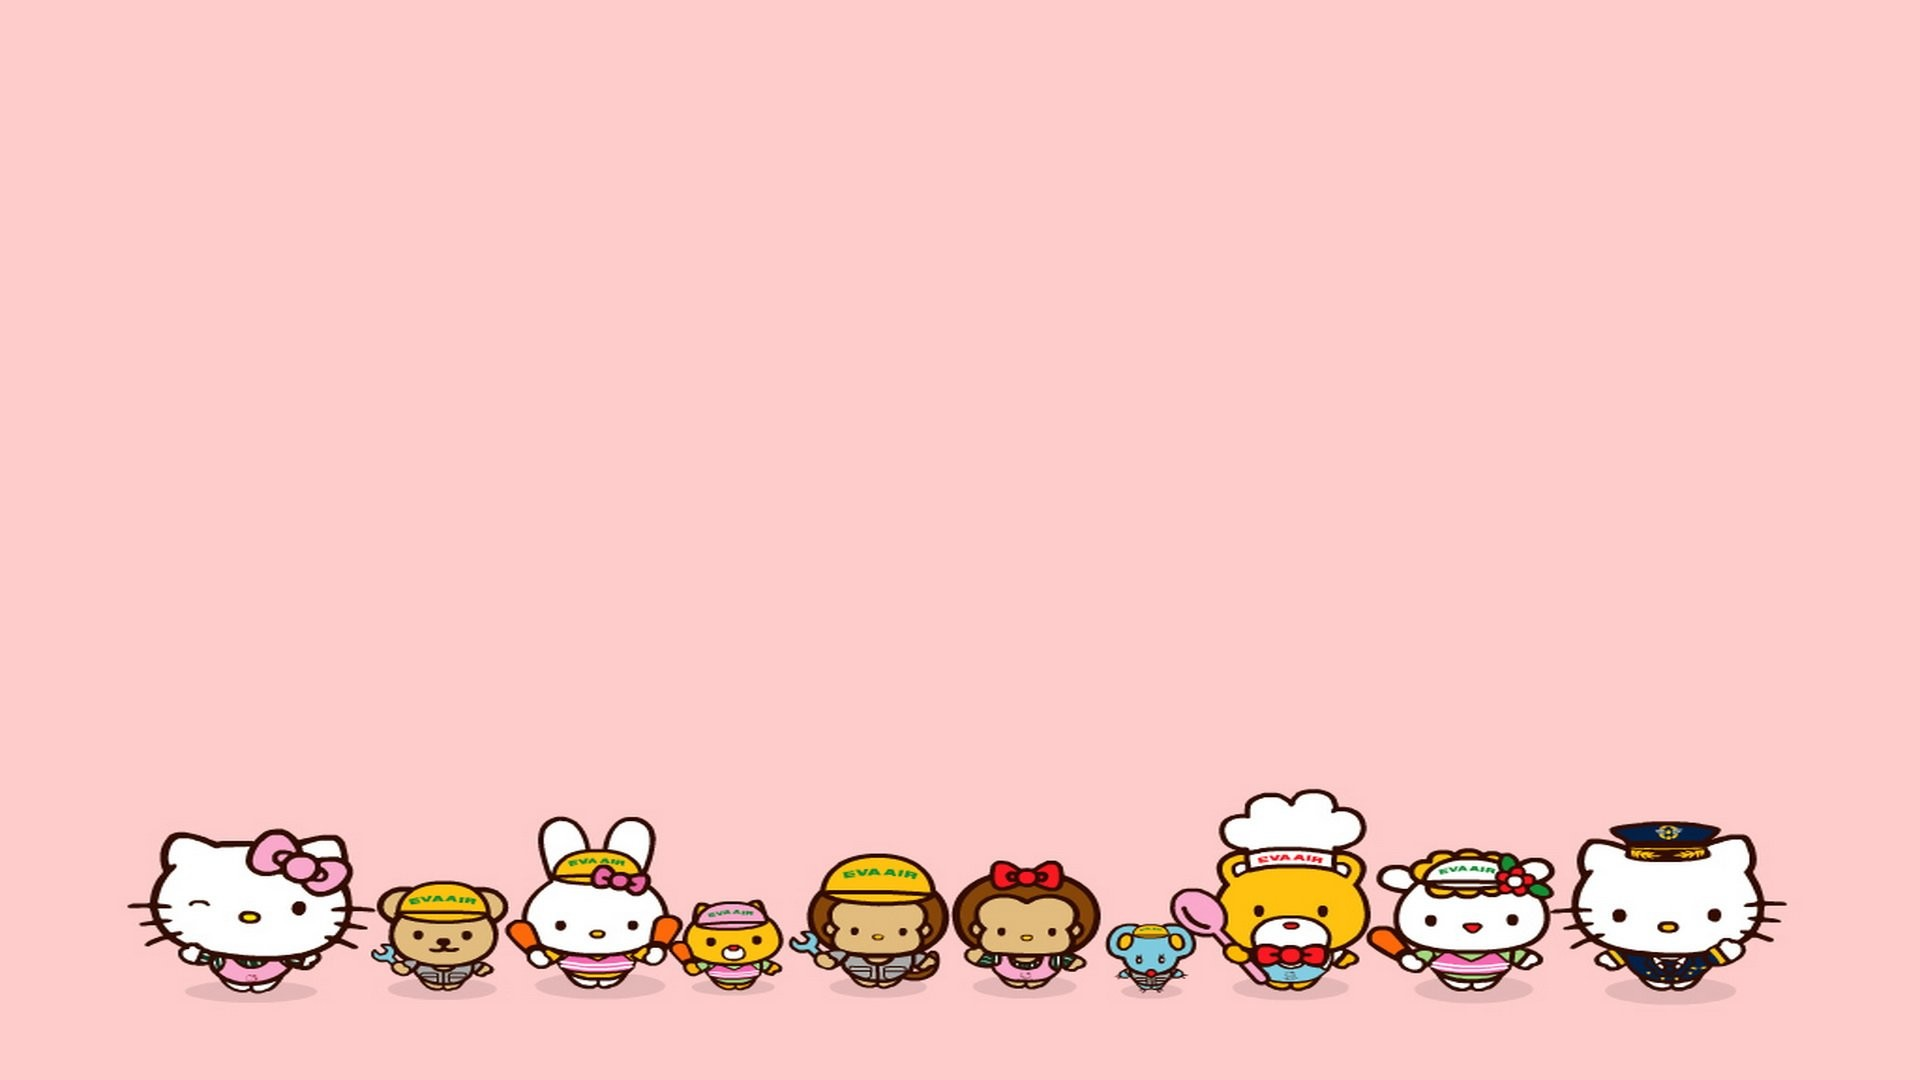 Amazing Wallpaper Hello Kitty Mac - 836346-hello-kitty-wallpaper-1920x1080-download-free  You Should Have_968312.jpg